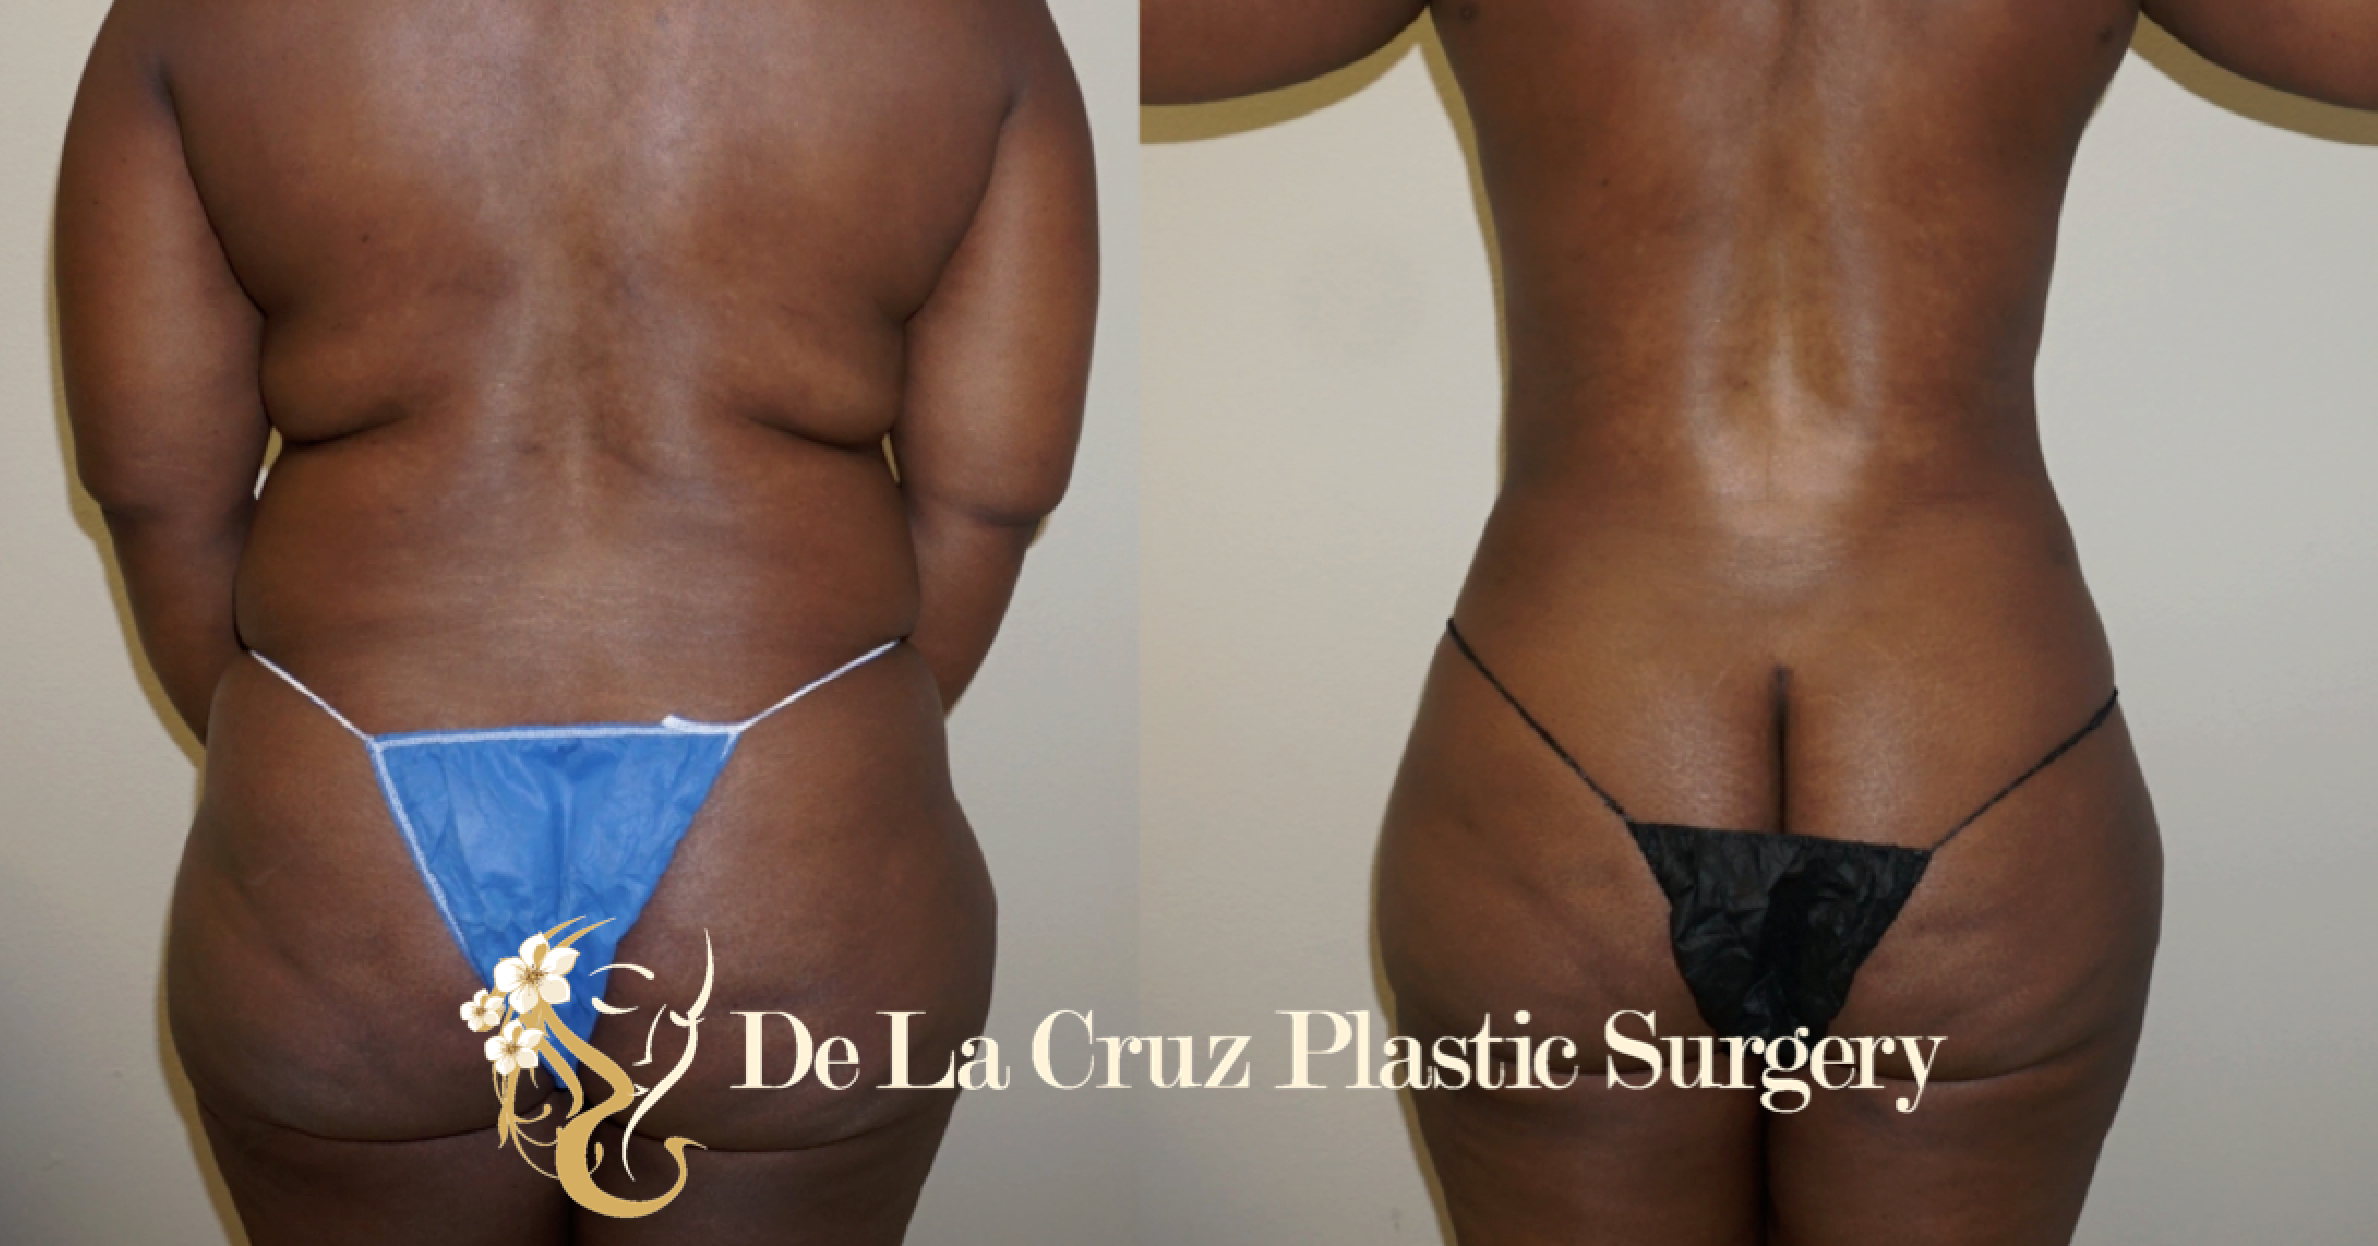 Before and After Photos of Large Volume Liposuction performed by Dr. Emmanuel De La Cruz.